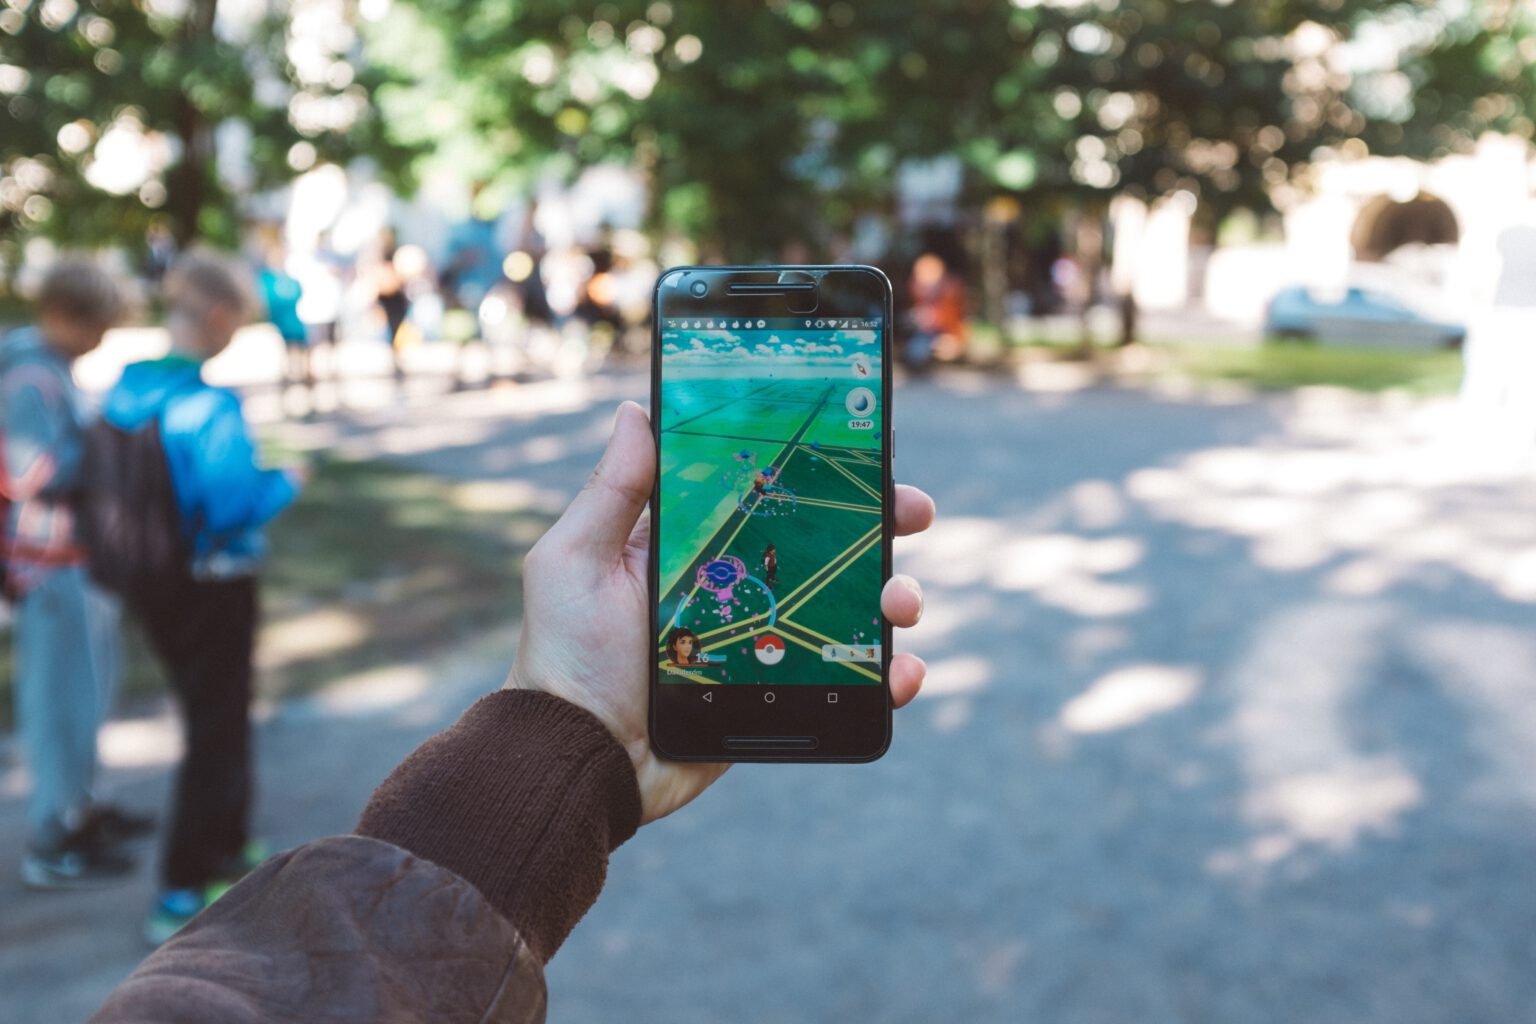 AR technology is most commonly known from the game Pokémon GO. But it can also enhance your learning experience!